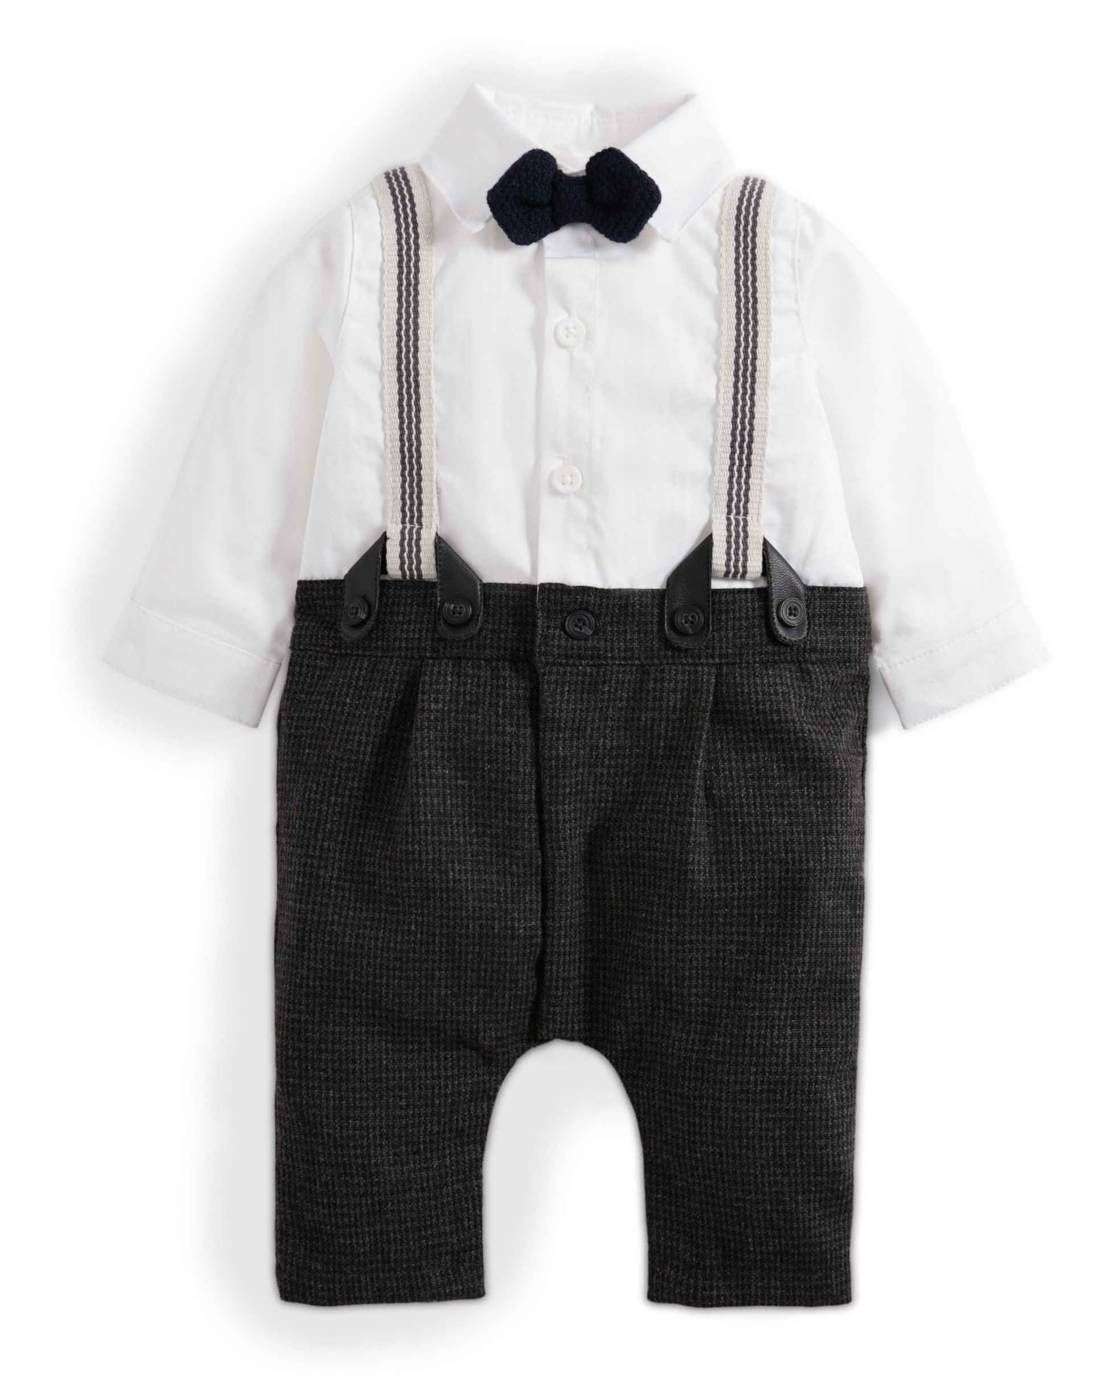 Mamas /& Papas Baby Boys Check Mock Braces Romper